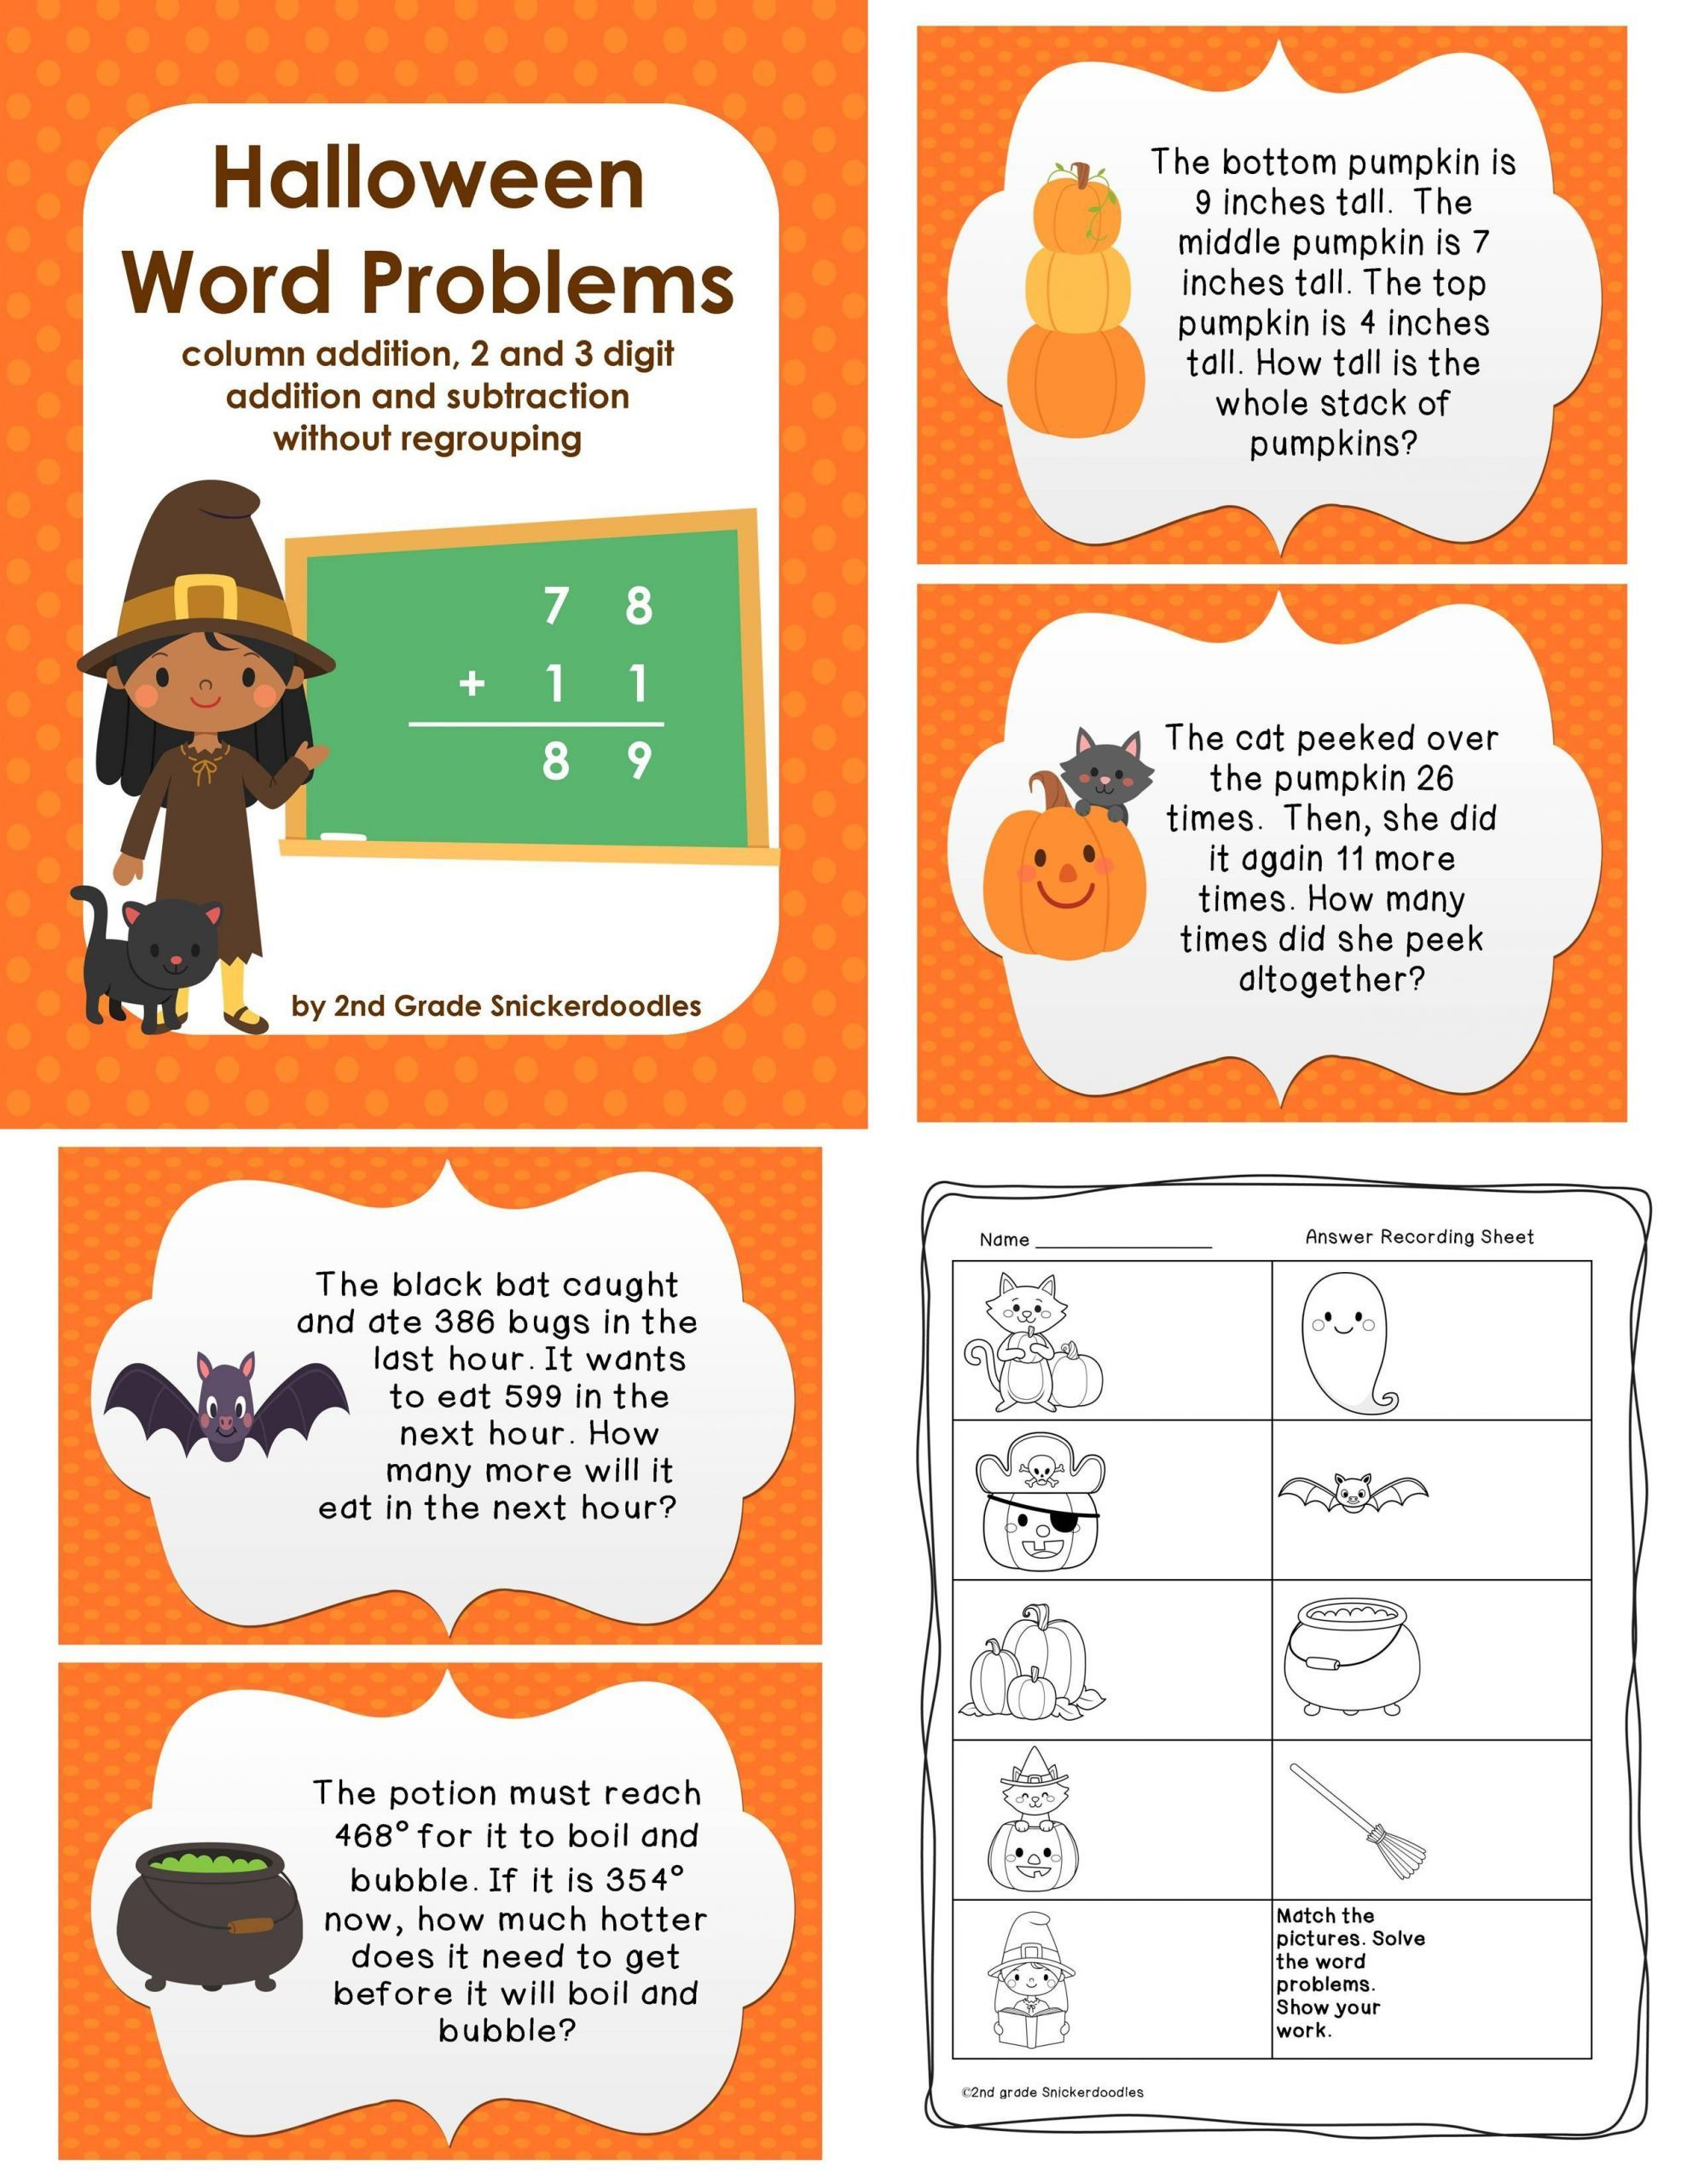 27 Word Problems For Grade 5 Of Addition And Subtraction